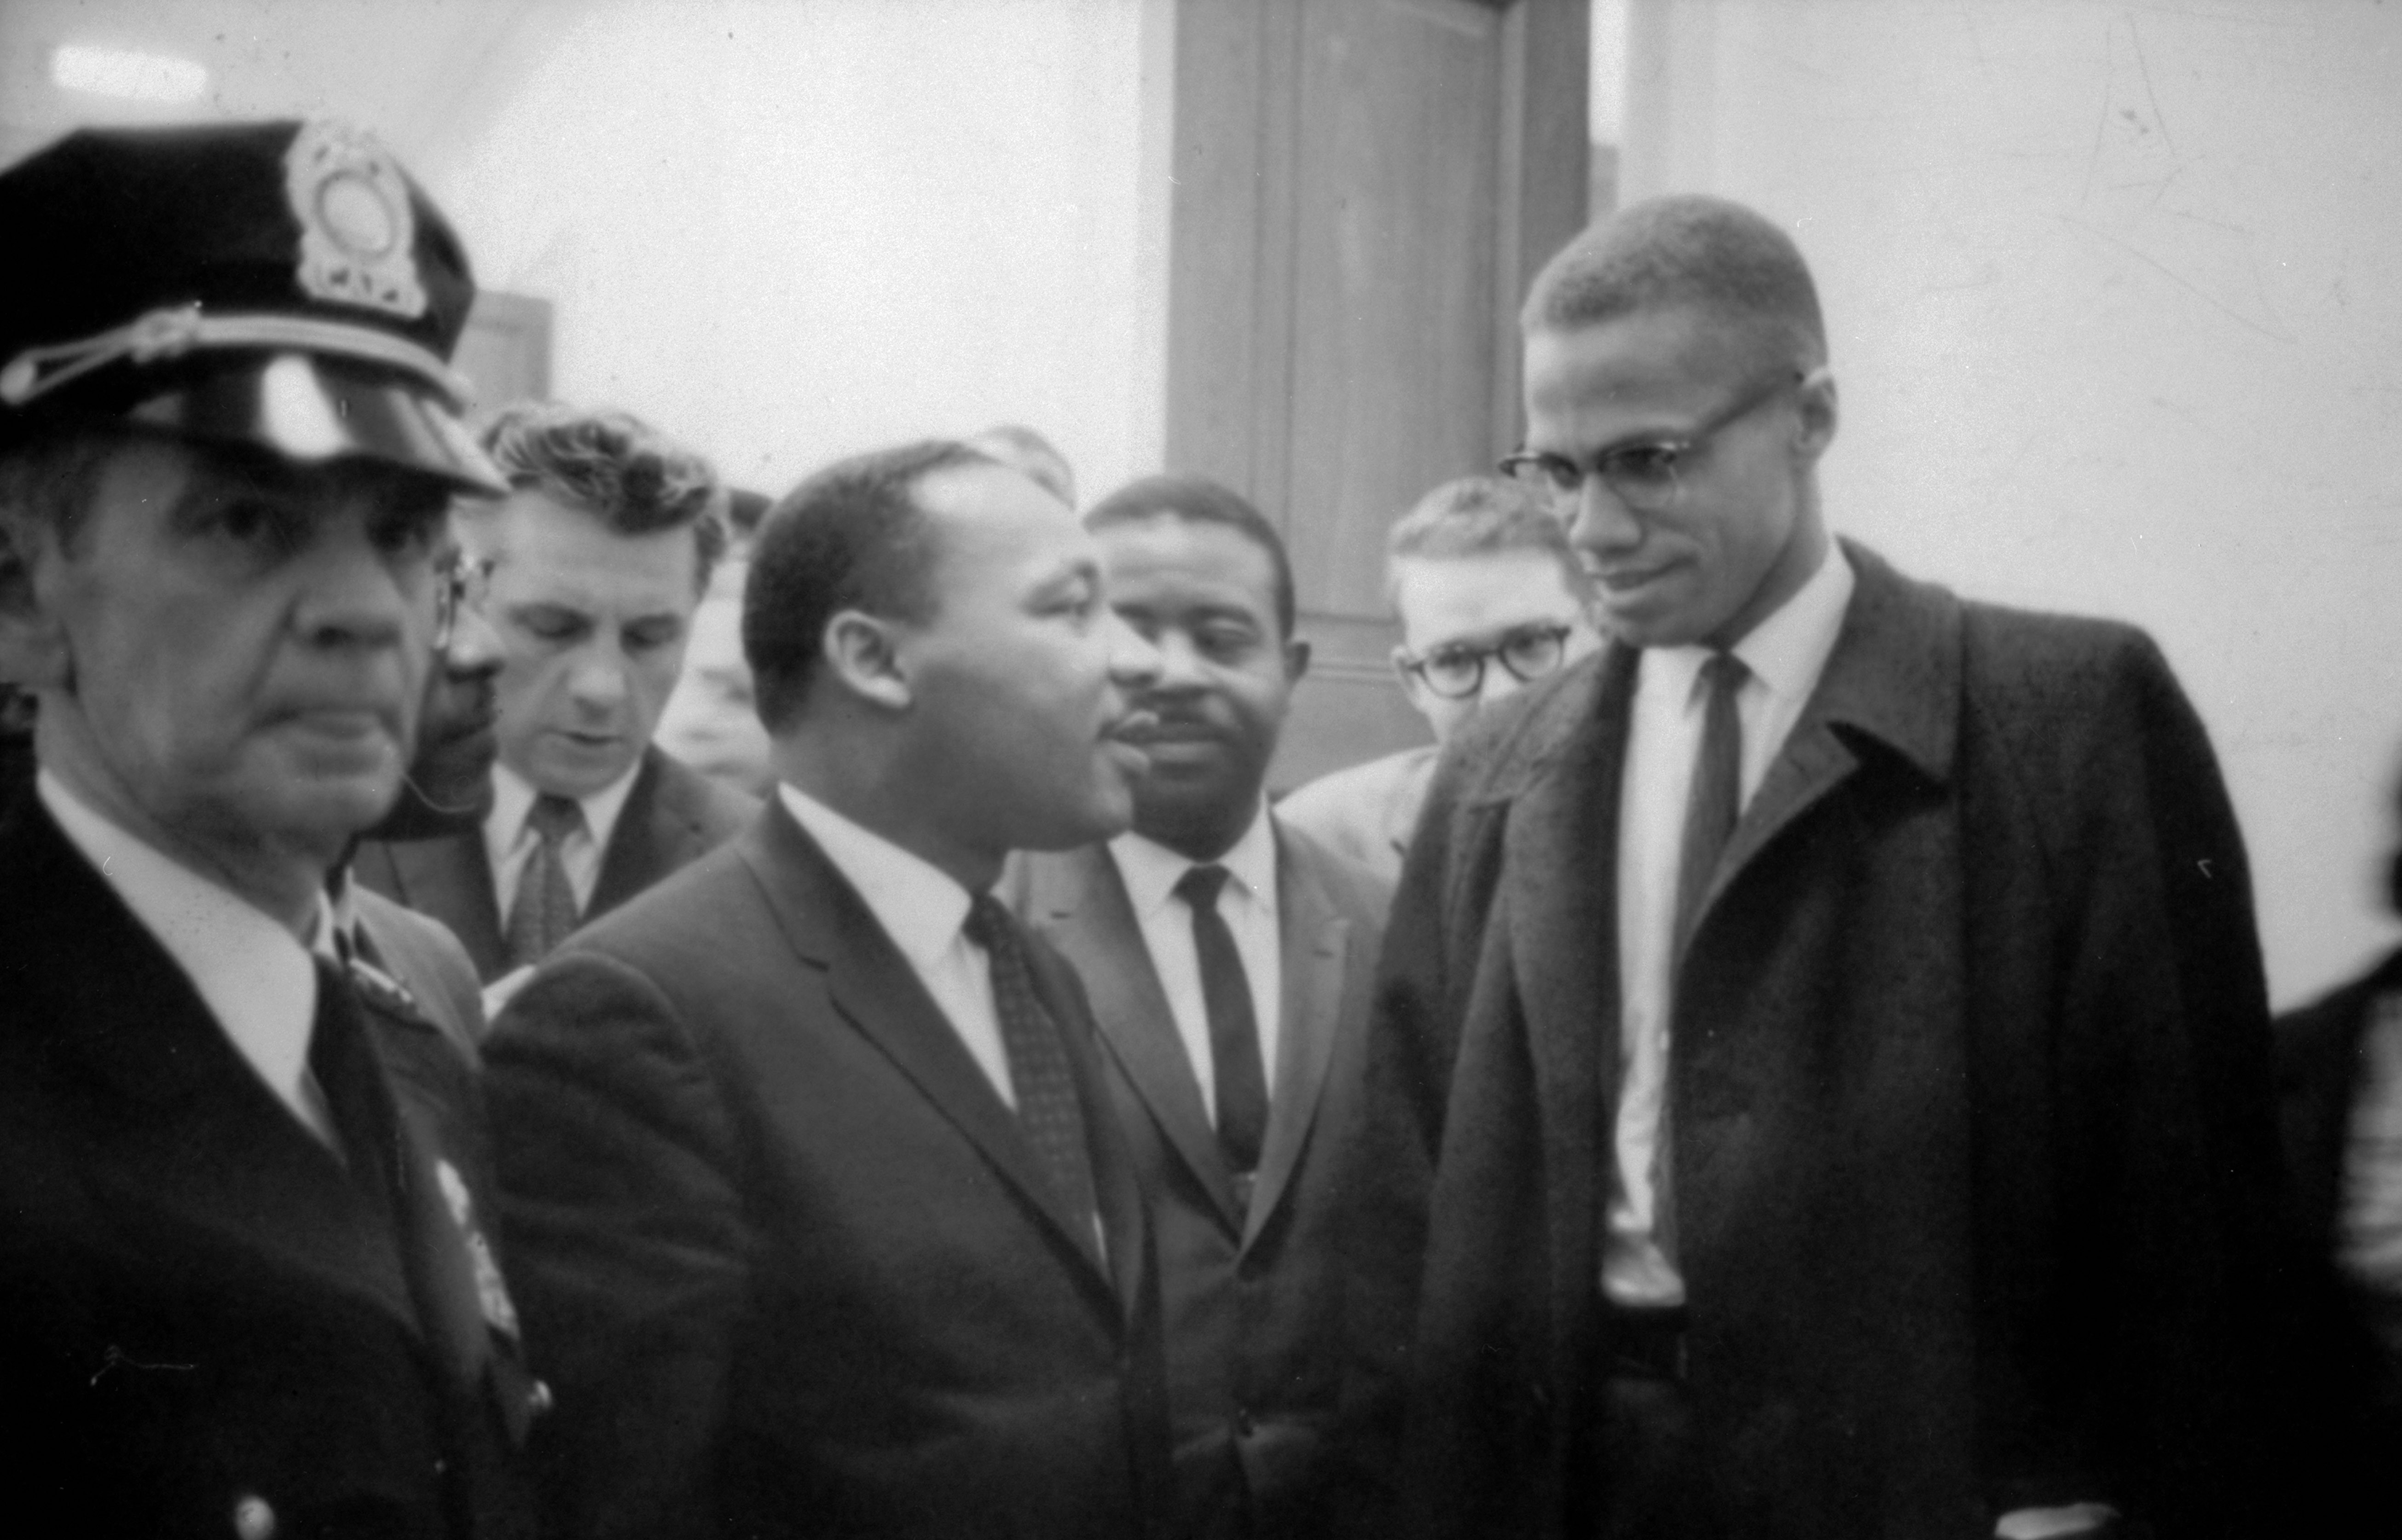 malcolm x vs dr king passive Martin luther king jr and malcolm x were two of the most prominent african american leaders in the history of the country both came to prominence during the 1960s, when the black population of america was ever more determined to get equal rights for themselves.